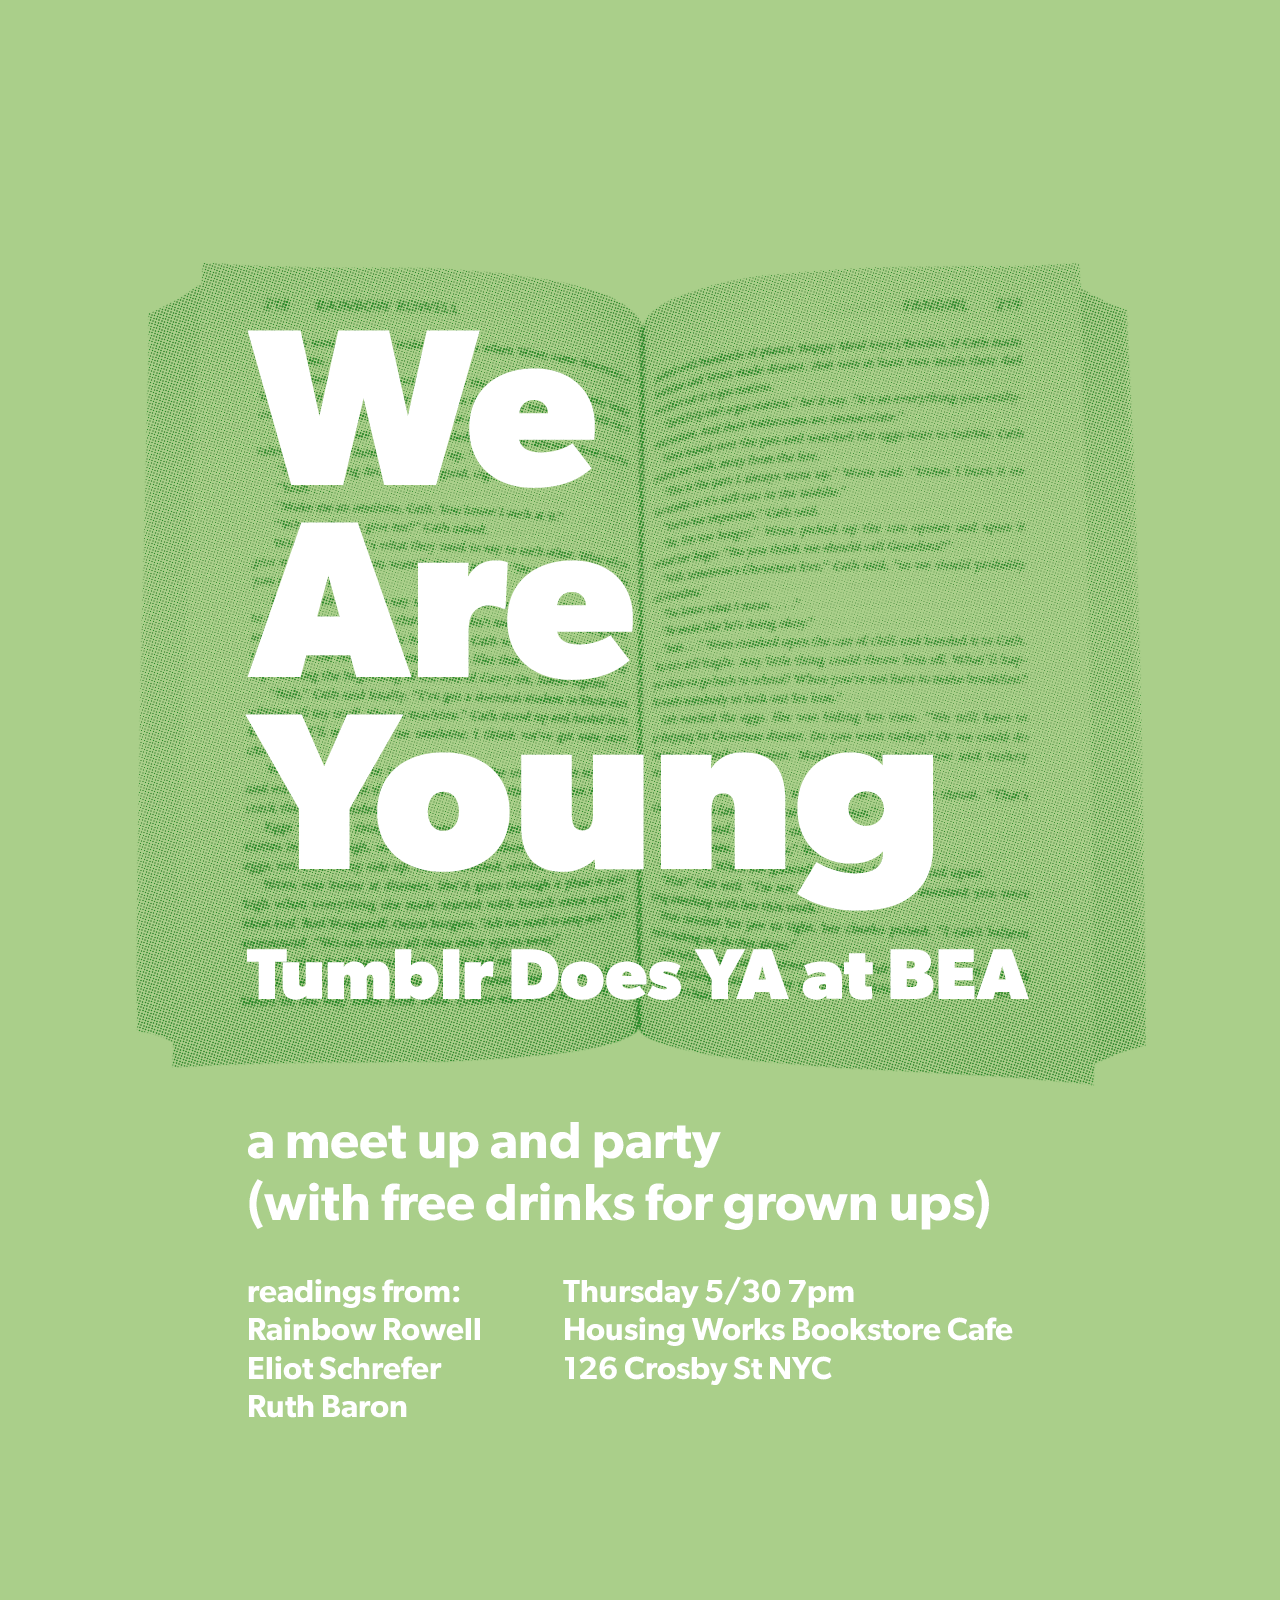 Next Thursday, Tumblr will be celebrating Book Expo America at our favorite bookstore with three of our favorite authors! This is a meet up for readers and writers of all ages, with drinks for the adults and swag and short, funny readings for everyone! Here for BEA? Work at a publisher? Love Tumblr? Love books? Love people? Any of the above — this party is for you! Ruth wrote Defriended, a creepy mystery about murder and online romance. Eliot wrote Endangered, a National Book Award finalist about bonobos in The Congo. Rainbow wrote the NY Times bestseller Eleanor &Park, a Tumblr favorite about weird kids in love. They are all terrific, so don't miss it!